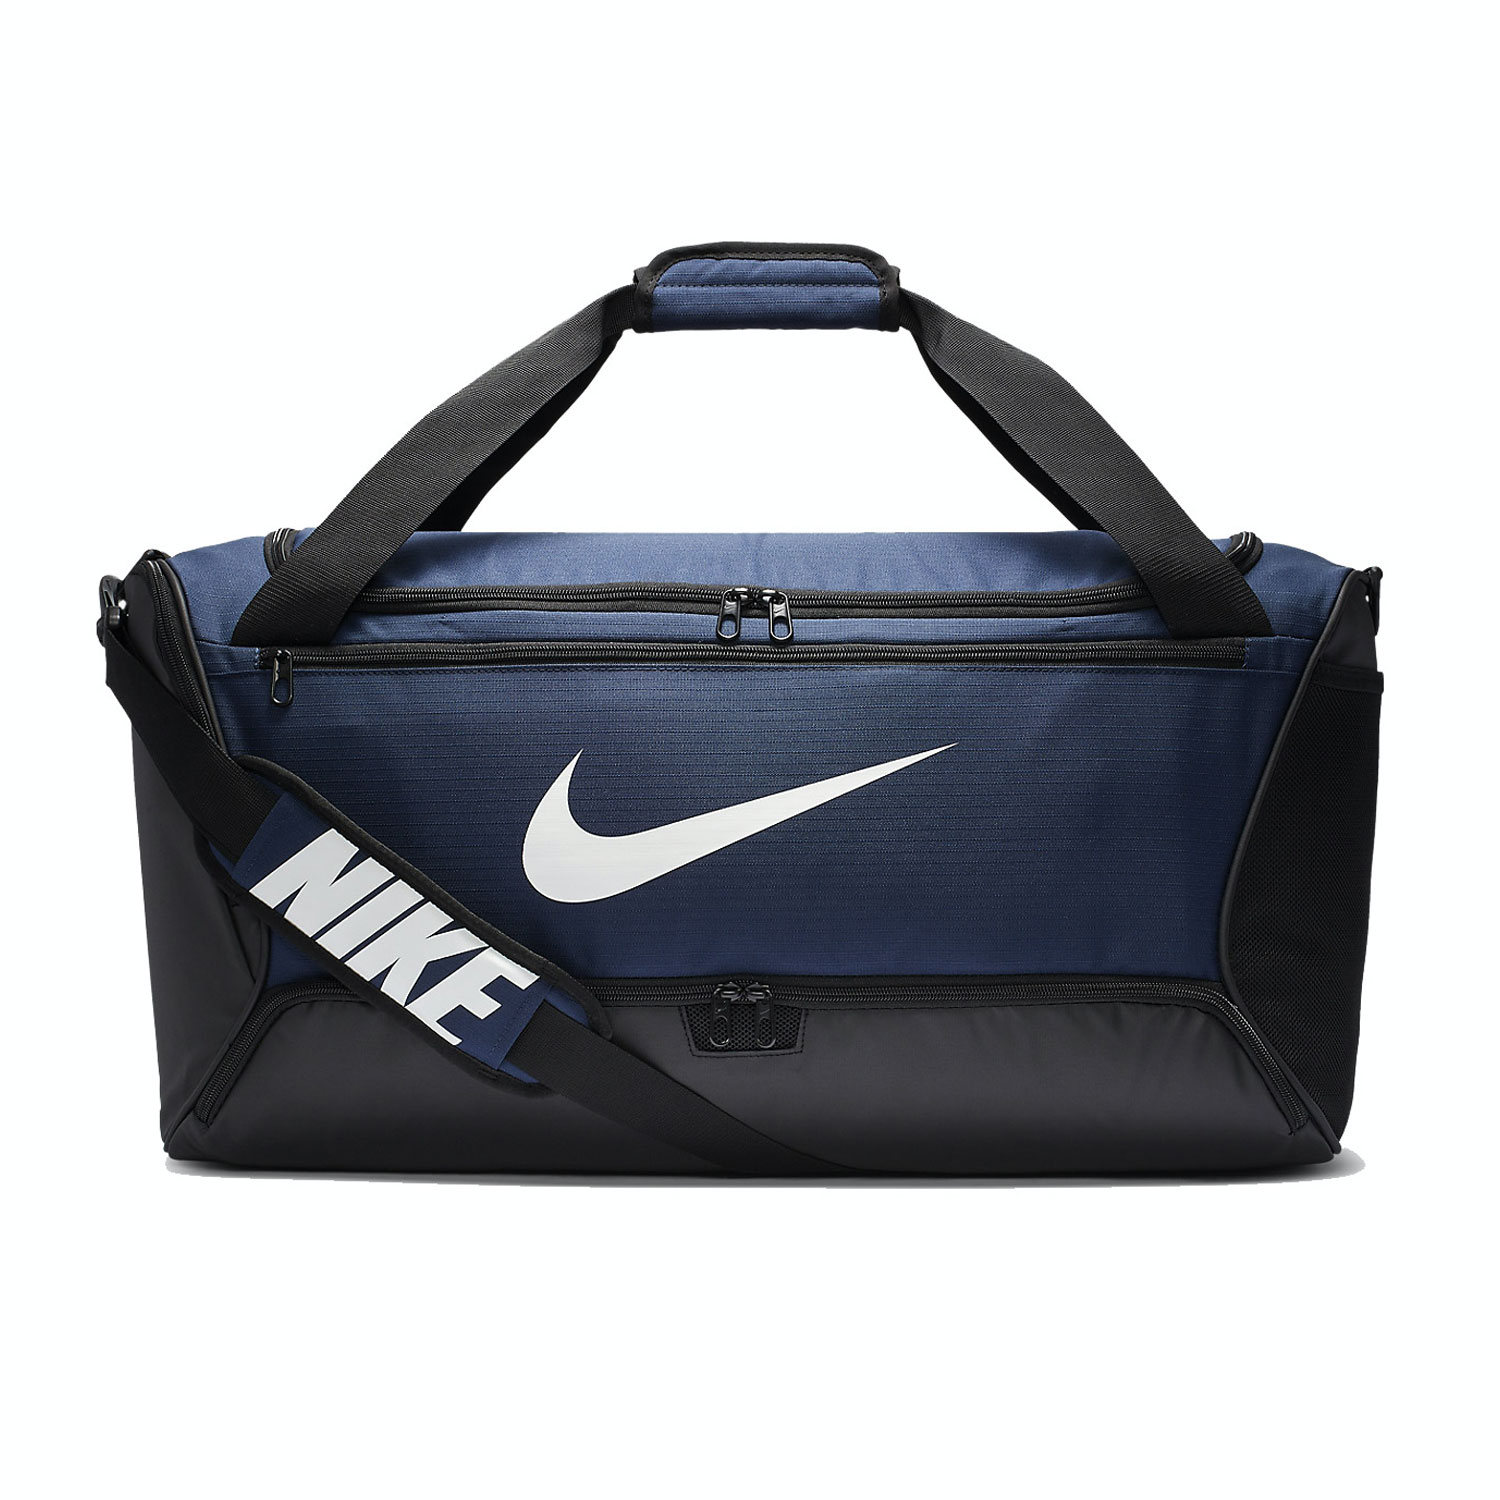 Nike Brasilia Medium Duffle - Midnight Navy/Black/White